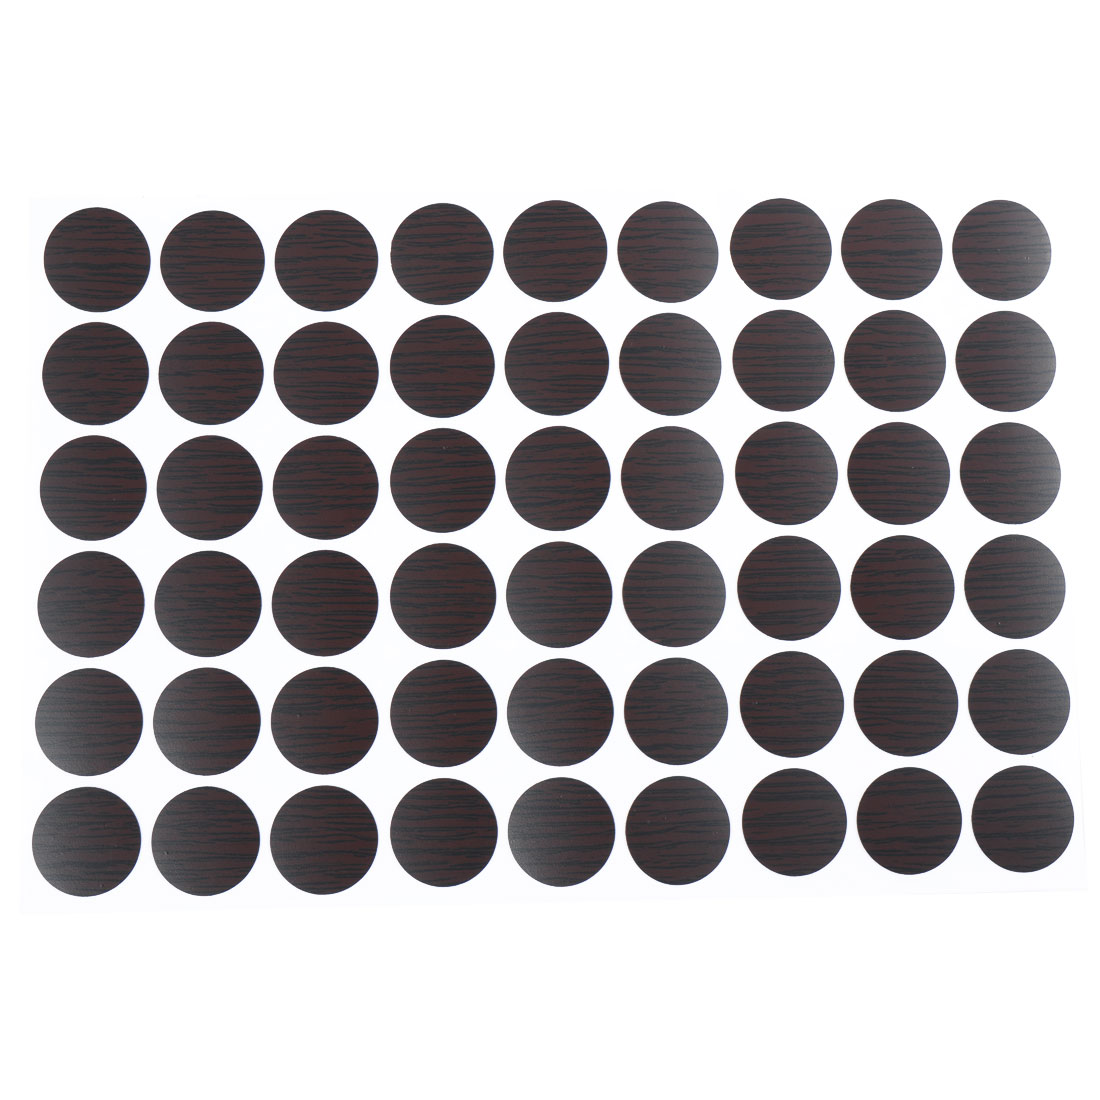 Home Office Furniture Self-adhesive Screw Covers Caps Stickers 21mm Dia 54 in 1